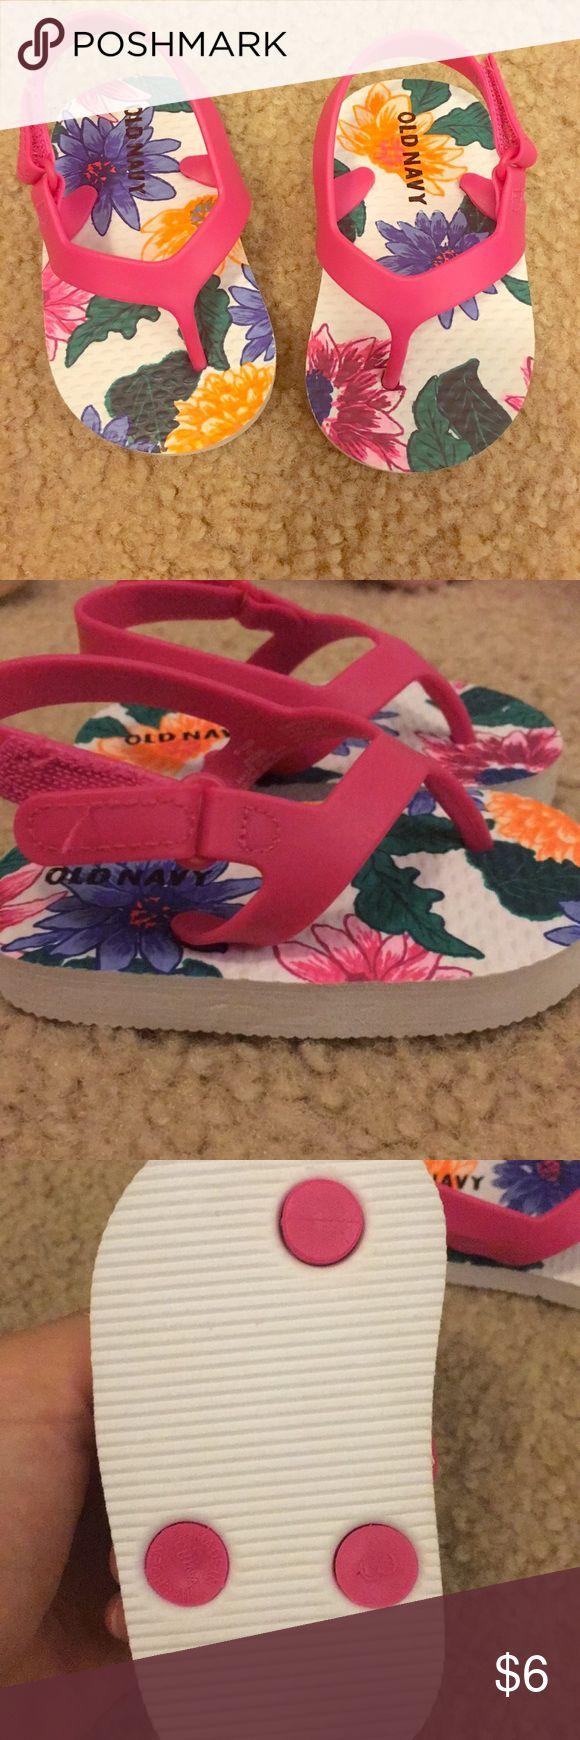 Brand new old navy flip flops! Brand new old navy flip flops! Never worn. Size 6-12 months. Velcro strap. Old Navy Shoes Sandals & Flip Flops